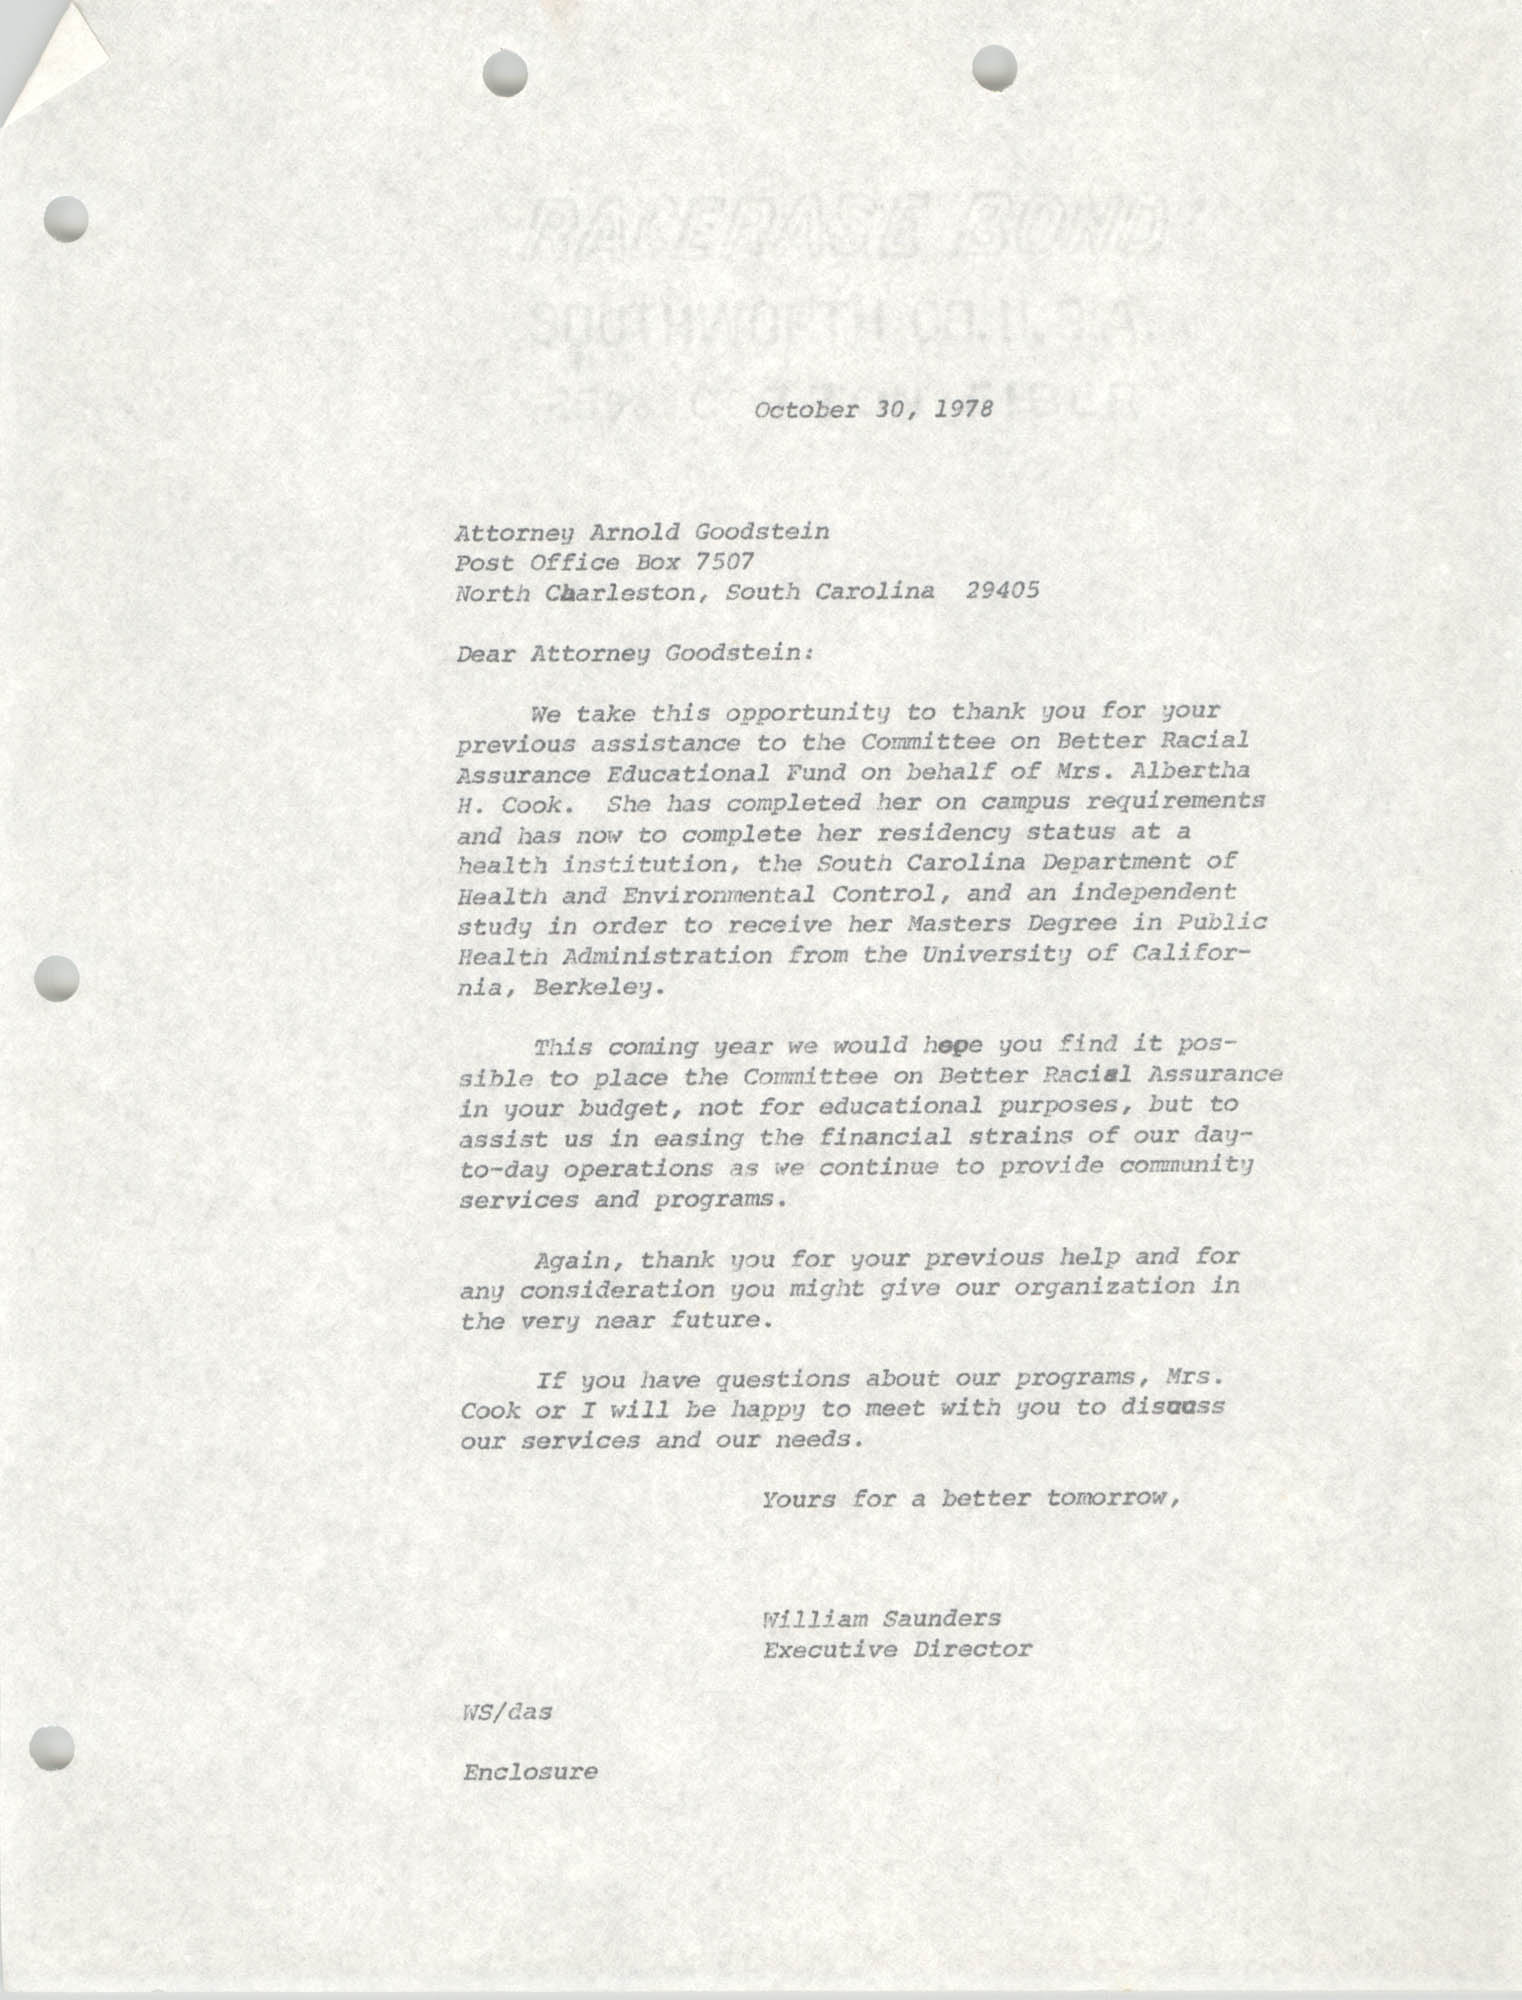 Letter from William Saunders to Arnold Goodstein, October 30, 1978